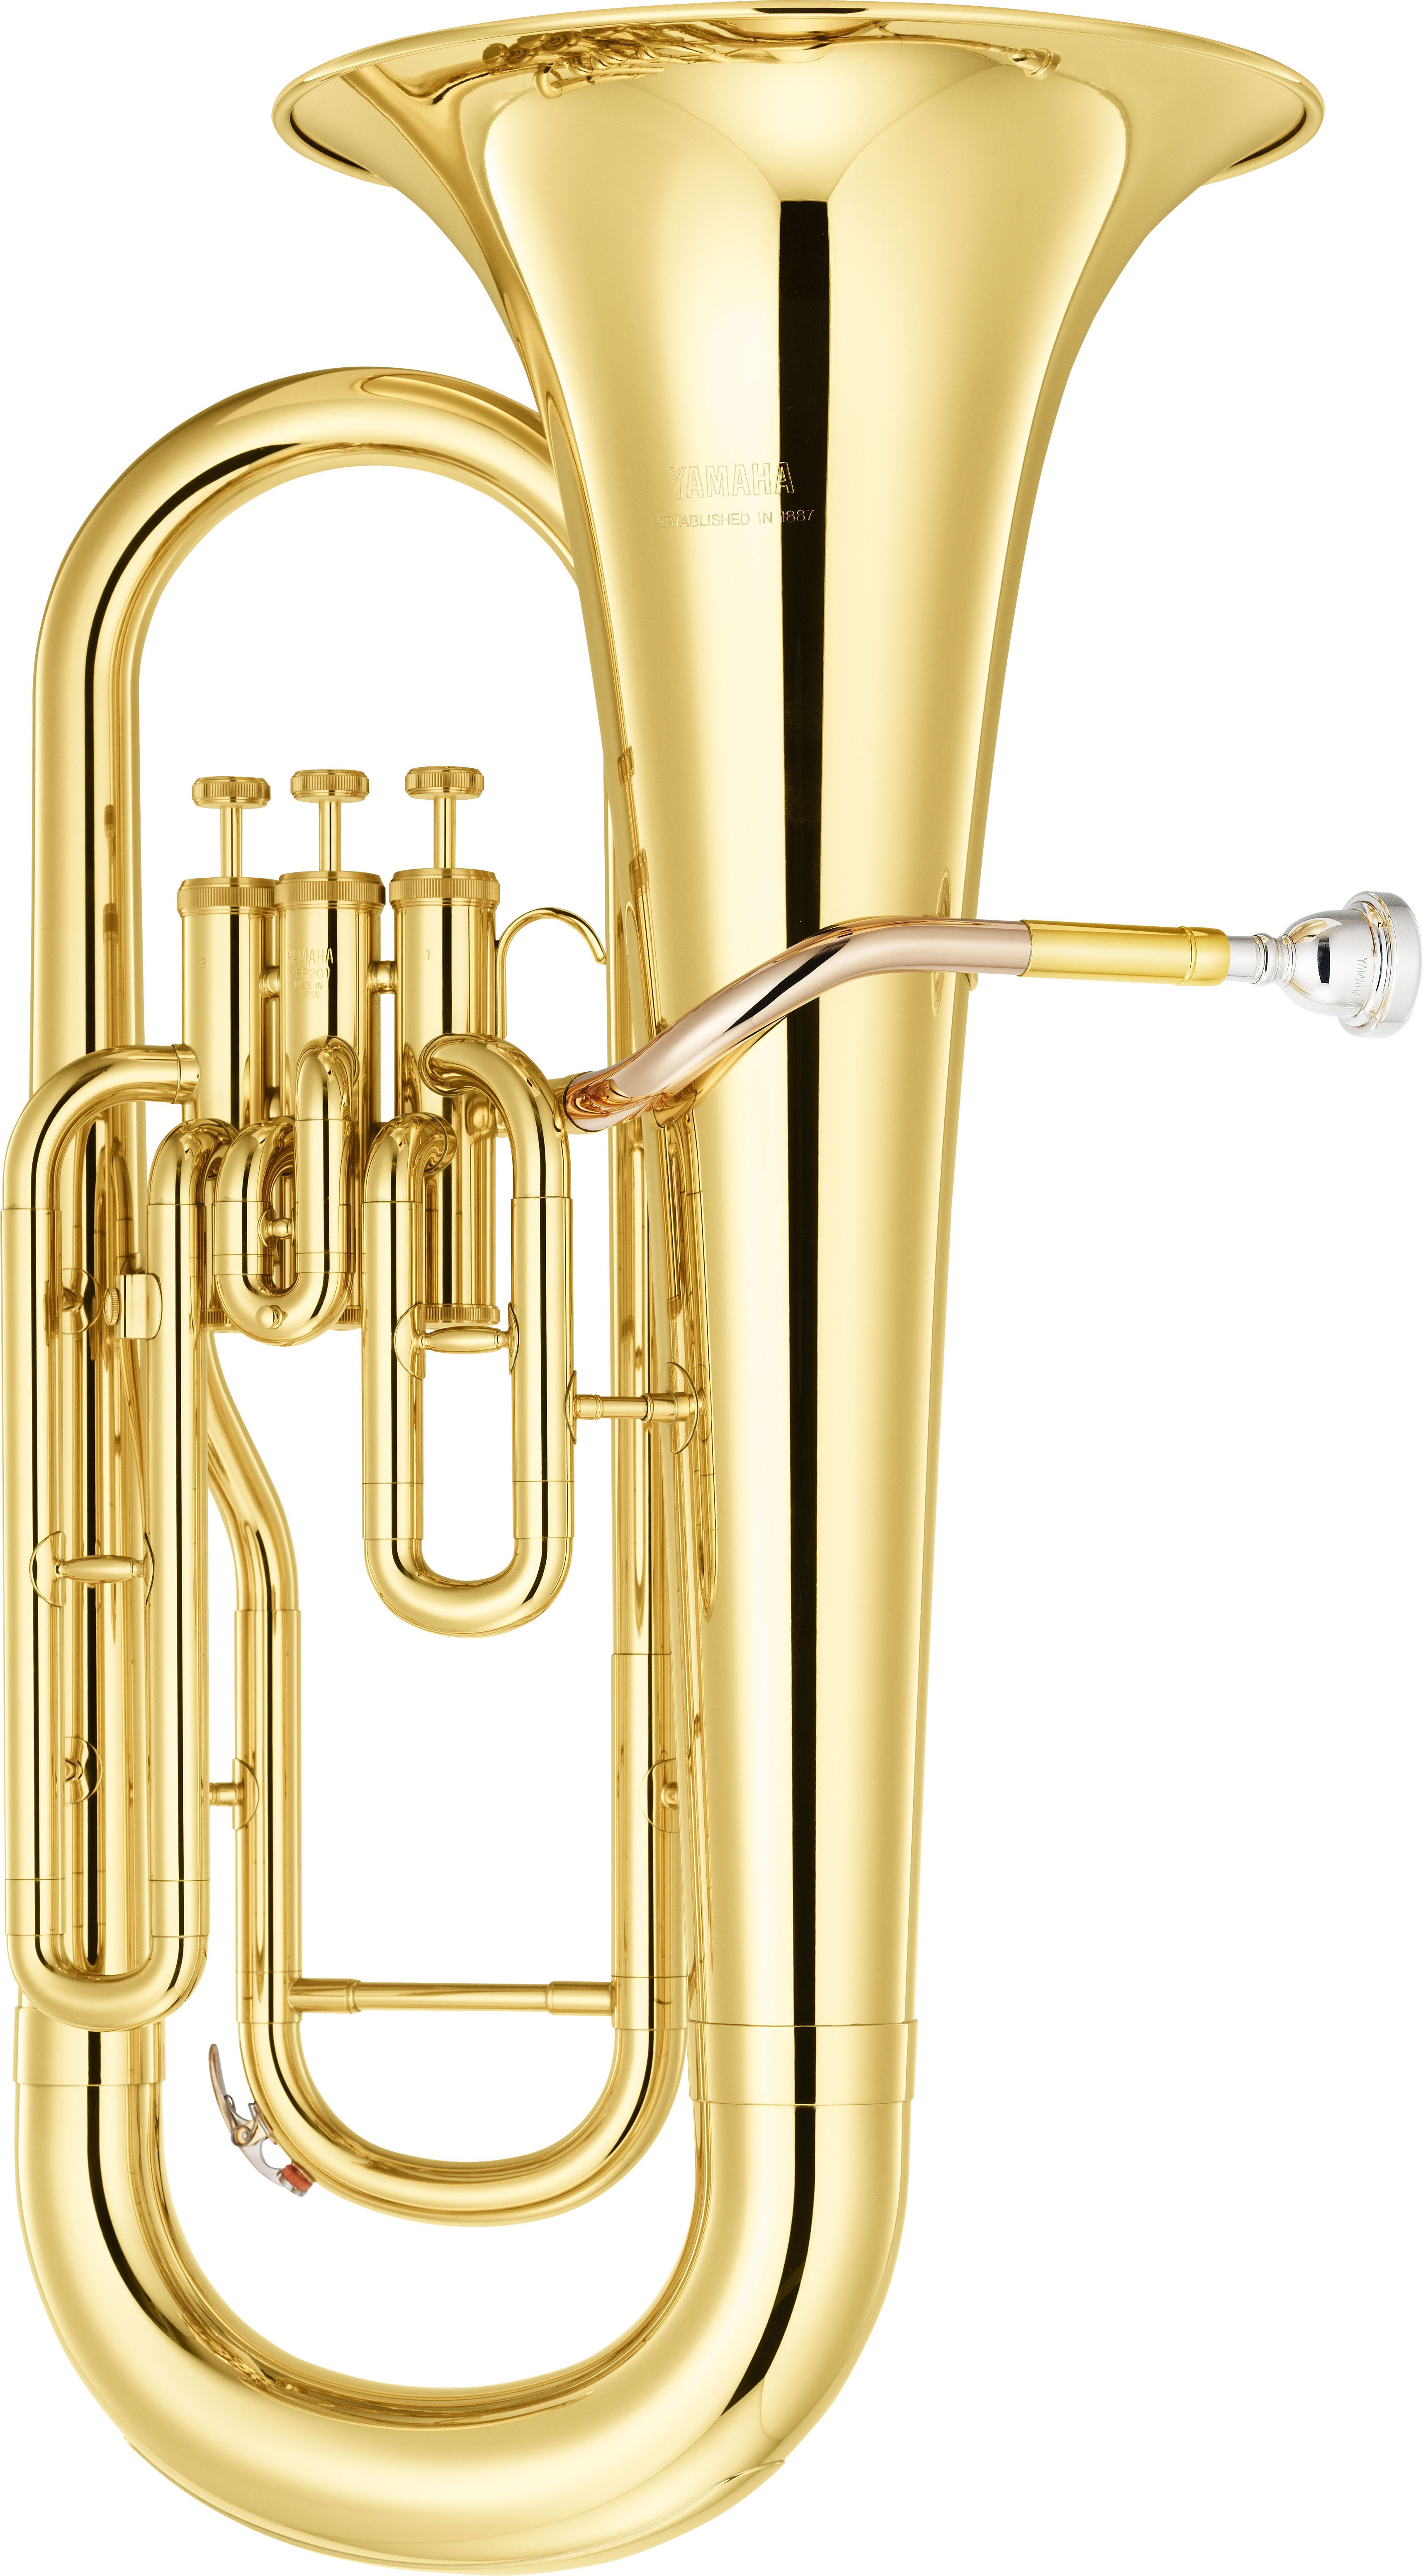 yep 201 overview euphoniums brass woodwinds musical instruments products yamaha. Black Bedroom Furniture Sets. Home Design Ideas